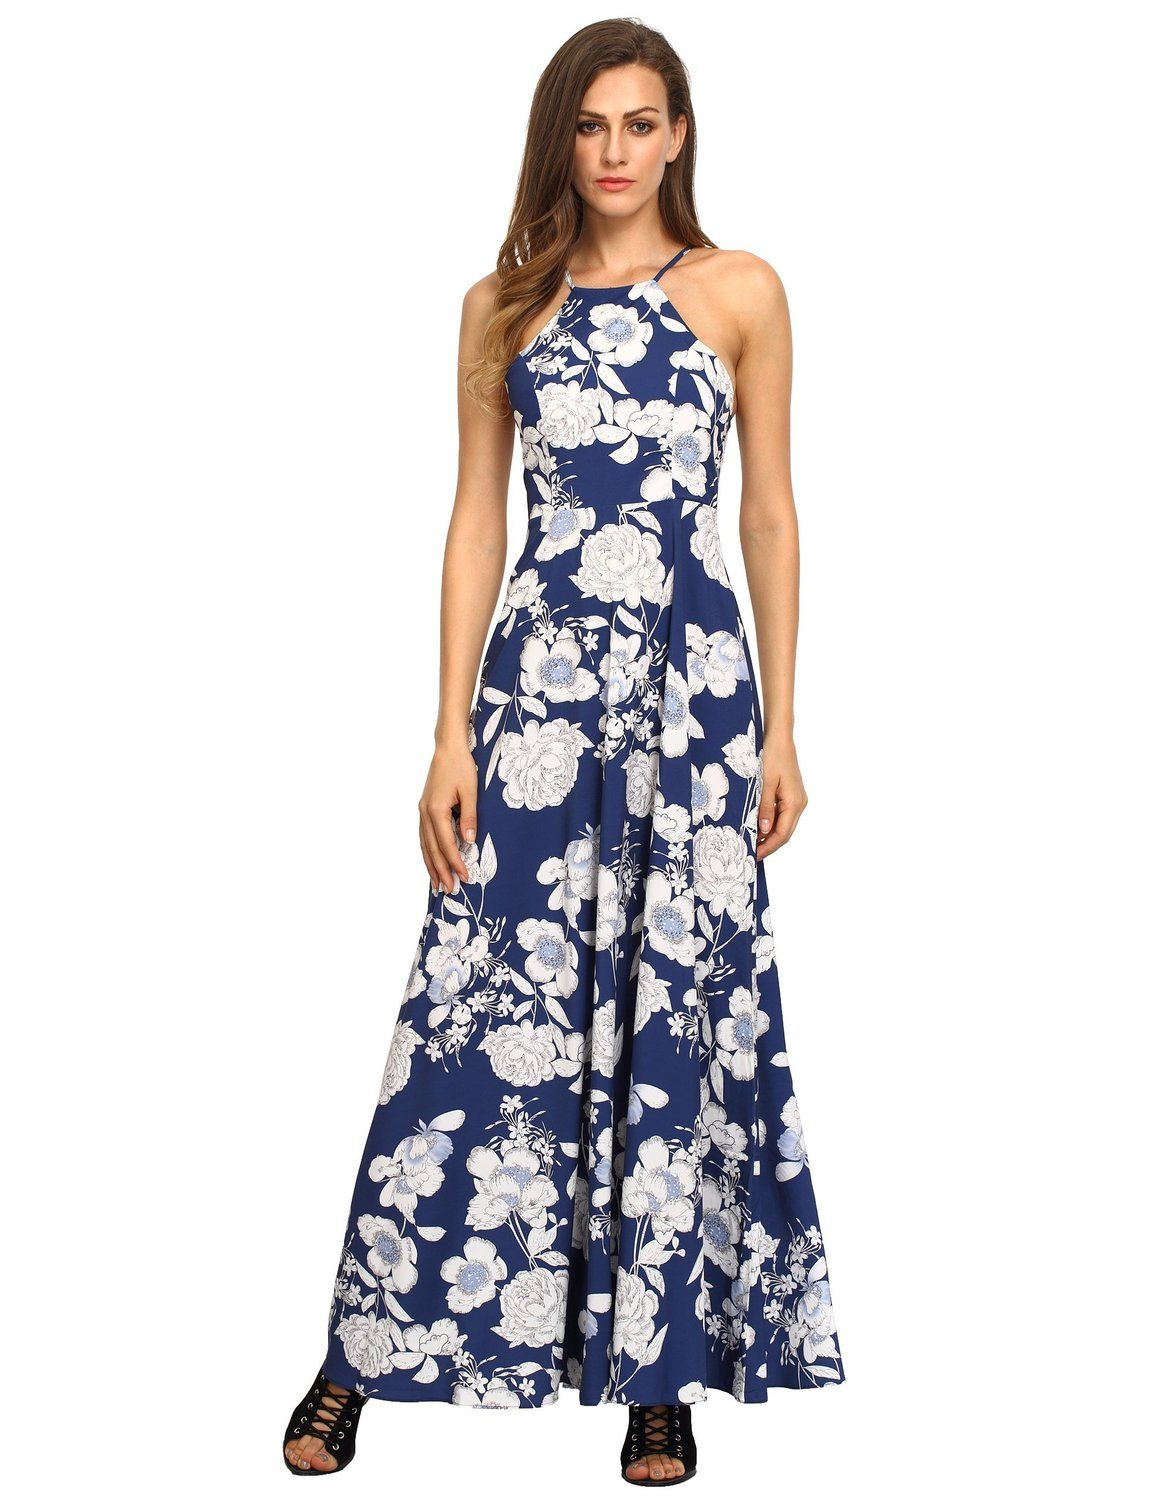 Floerns women 39 s sleeveless halter neck floral print for Print maxi dress for wedding